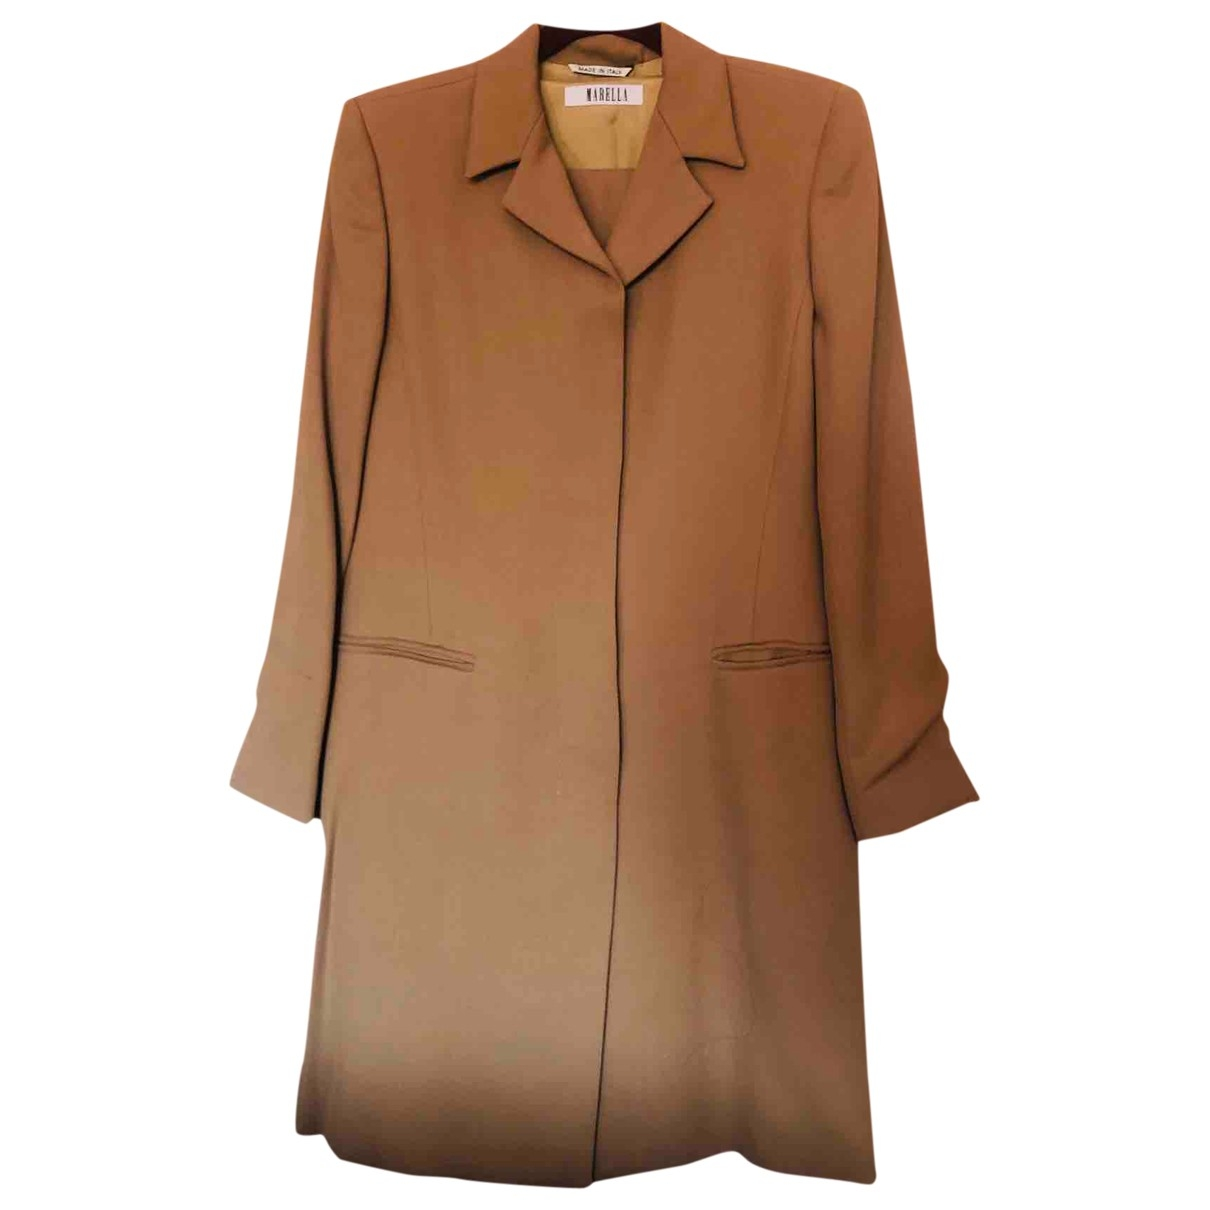 Marella \N Beige Wool jacket for Women 8 US